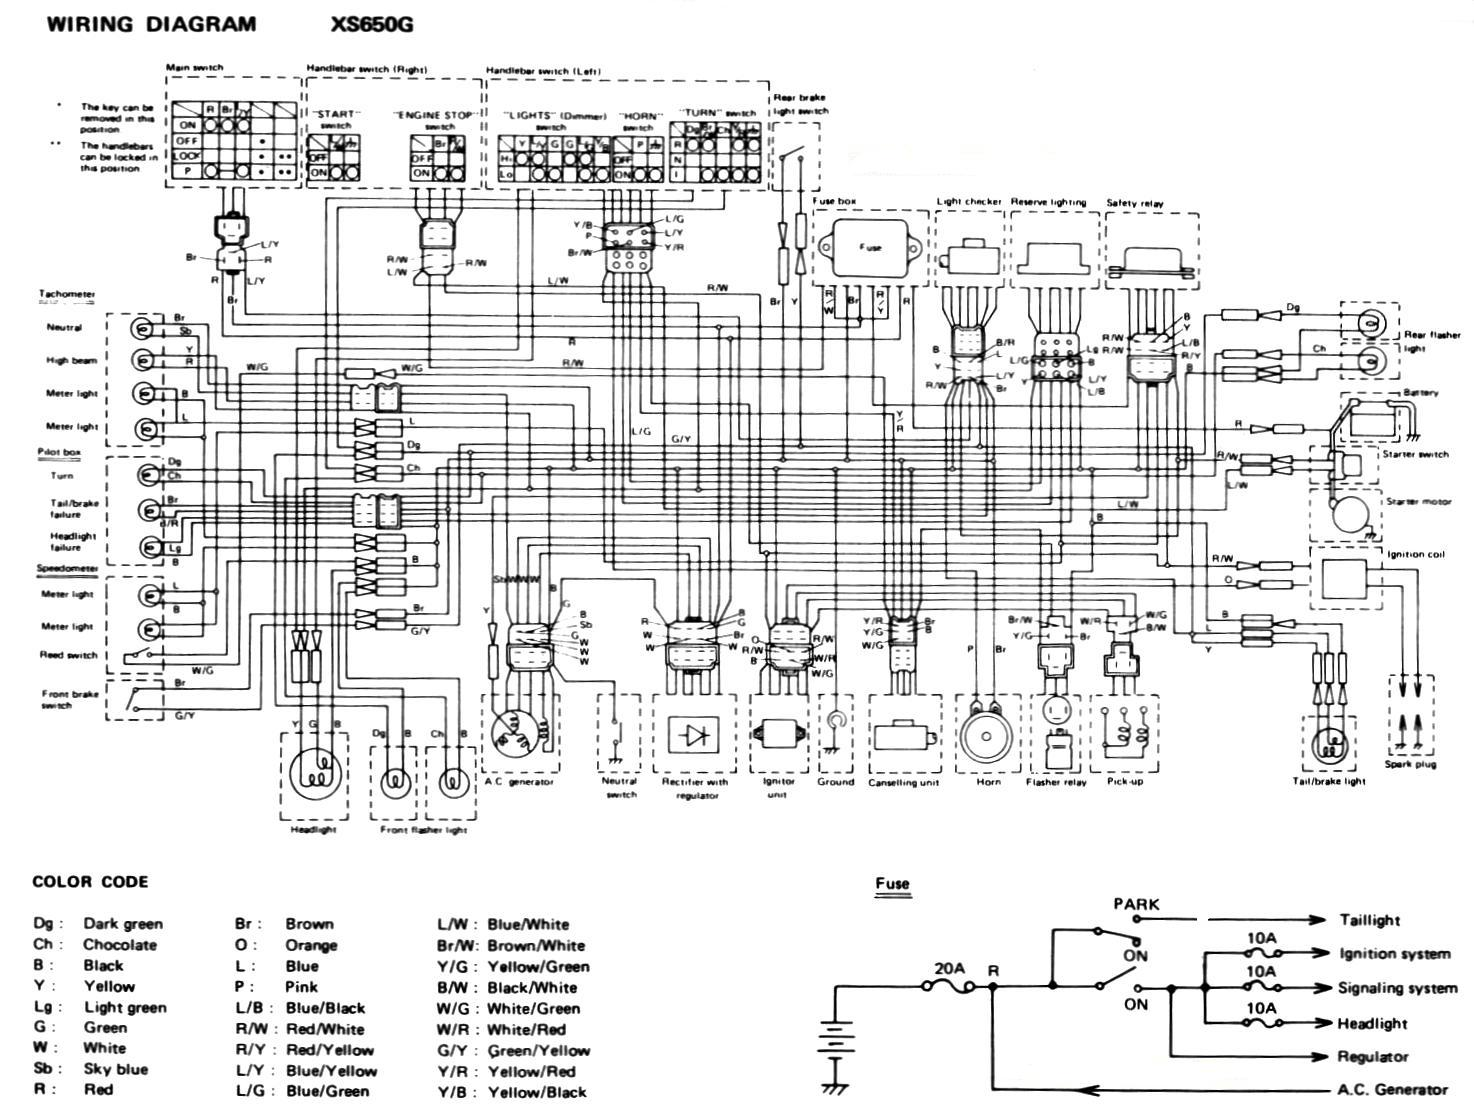 80XS650G wiring diagrams 1978 yamaha xs650 wiring diagram at virtualis.co